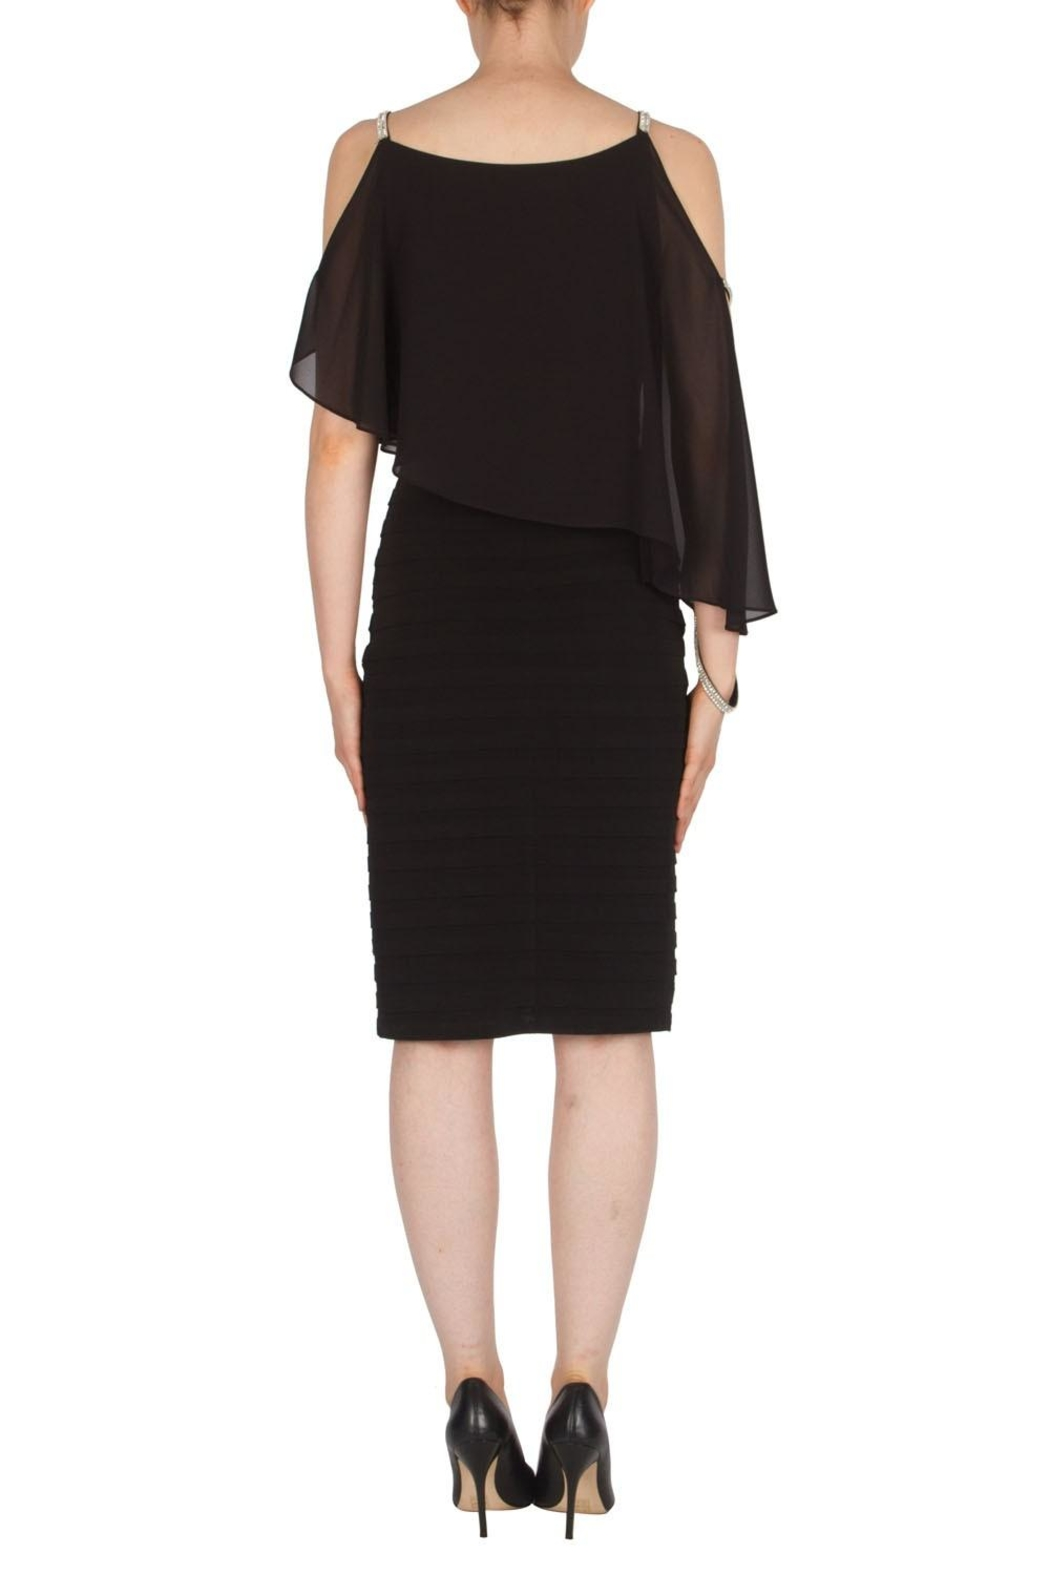 Joseph Ribkoff Jewel Accented Dress - Side Cropped Image